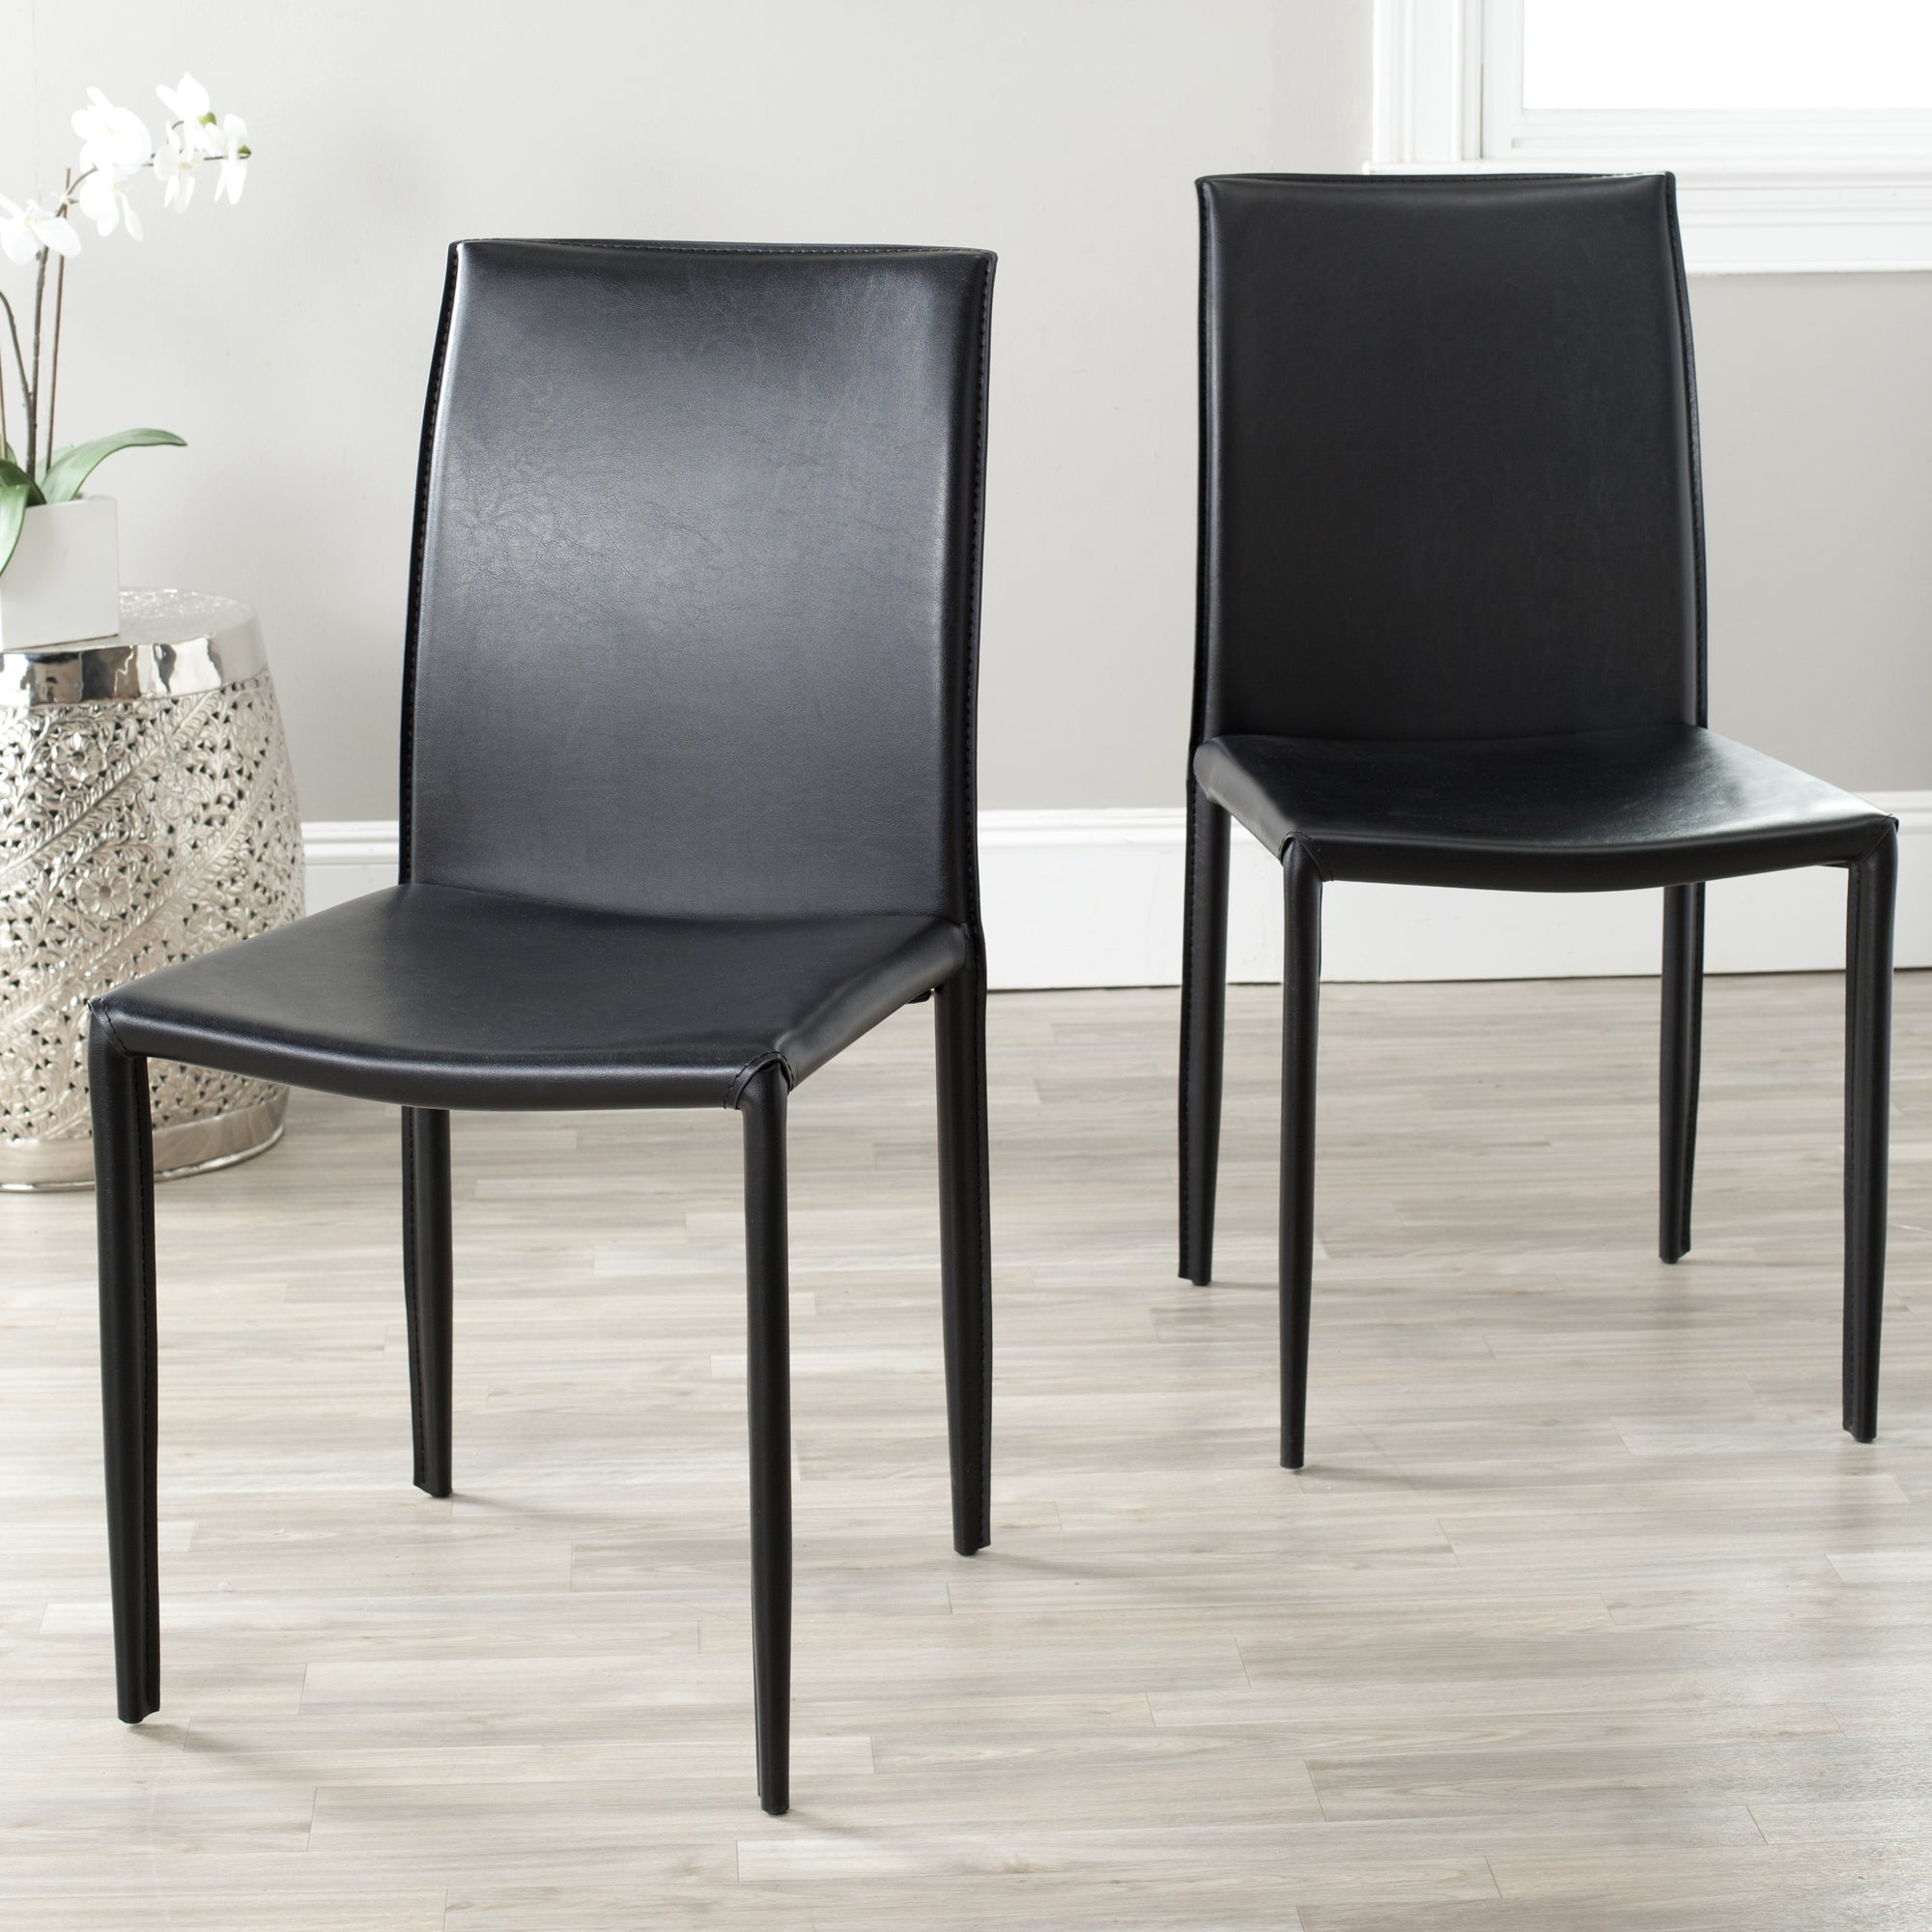 Super Safavieh Dining Mid Century Jazzy Bonded Leather Black Dining Chairs Set Of 2 Alphanode Cool Chair Designs And Ideas Alphanodeonline